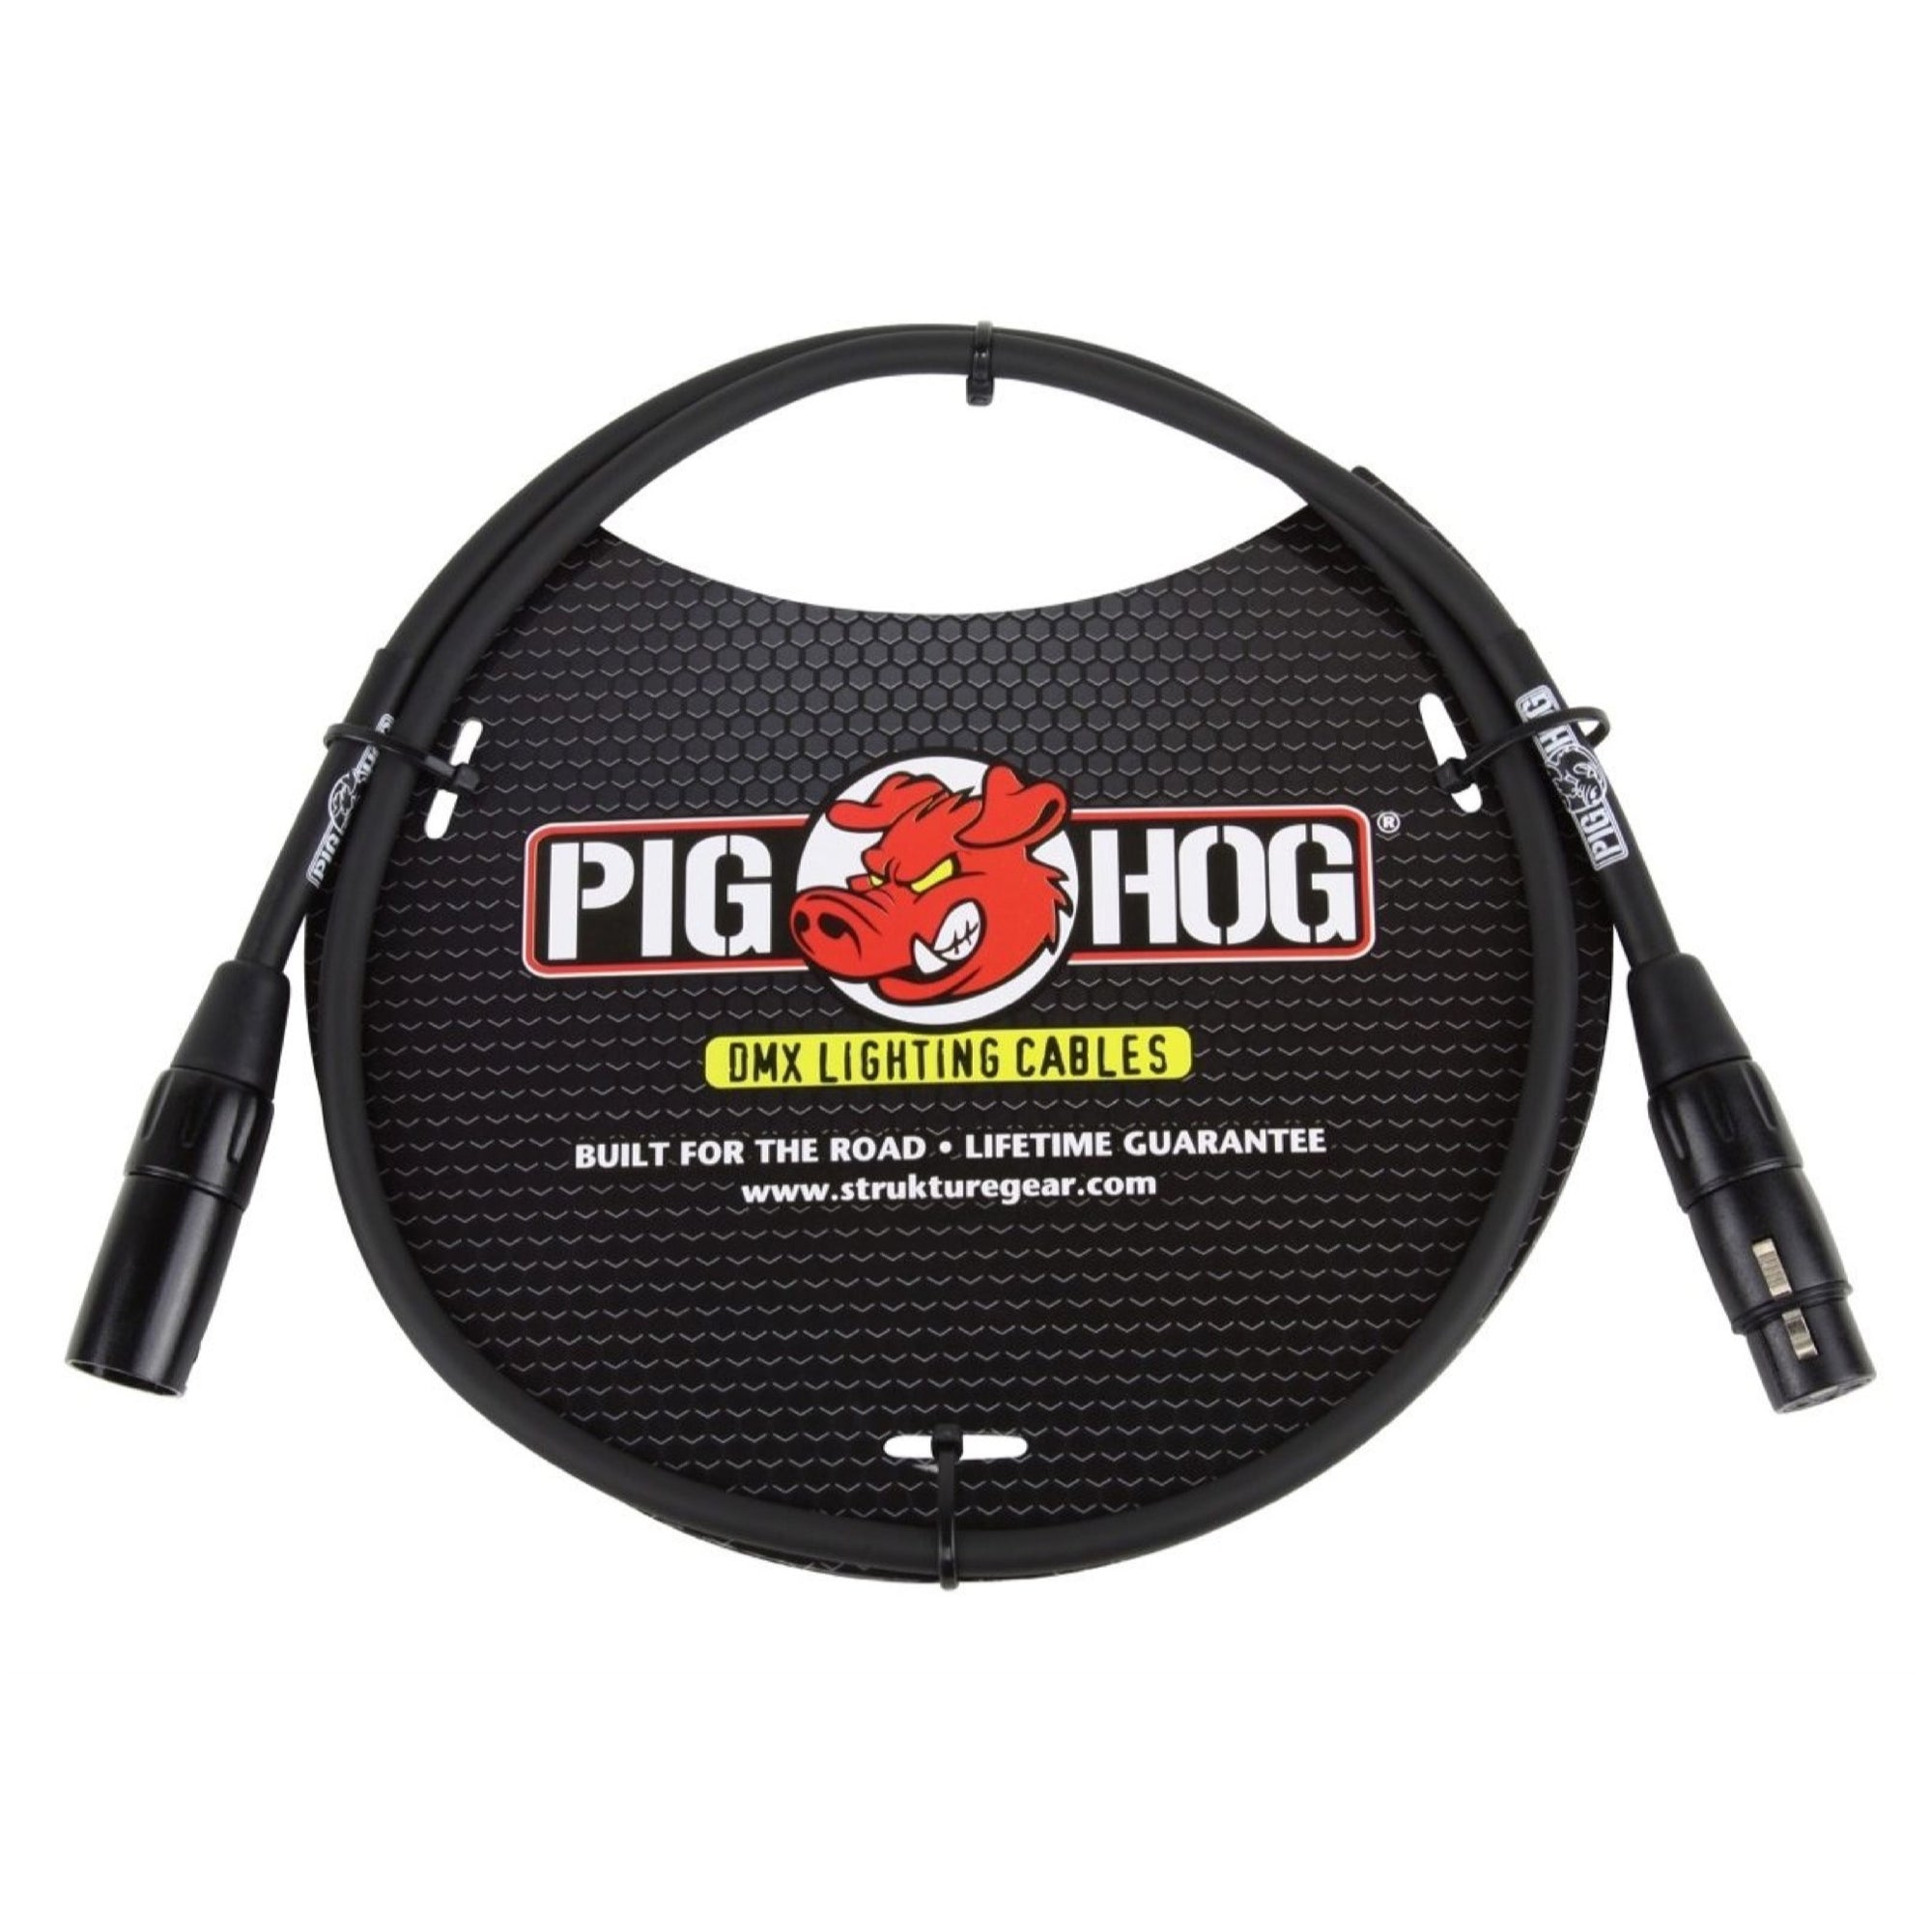 Pig Hog 3-Pin DMX Lighting Cable, 25 Foot